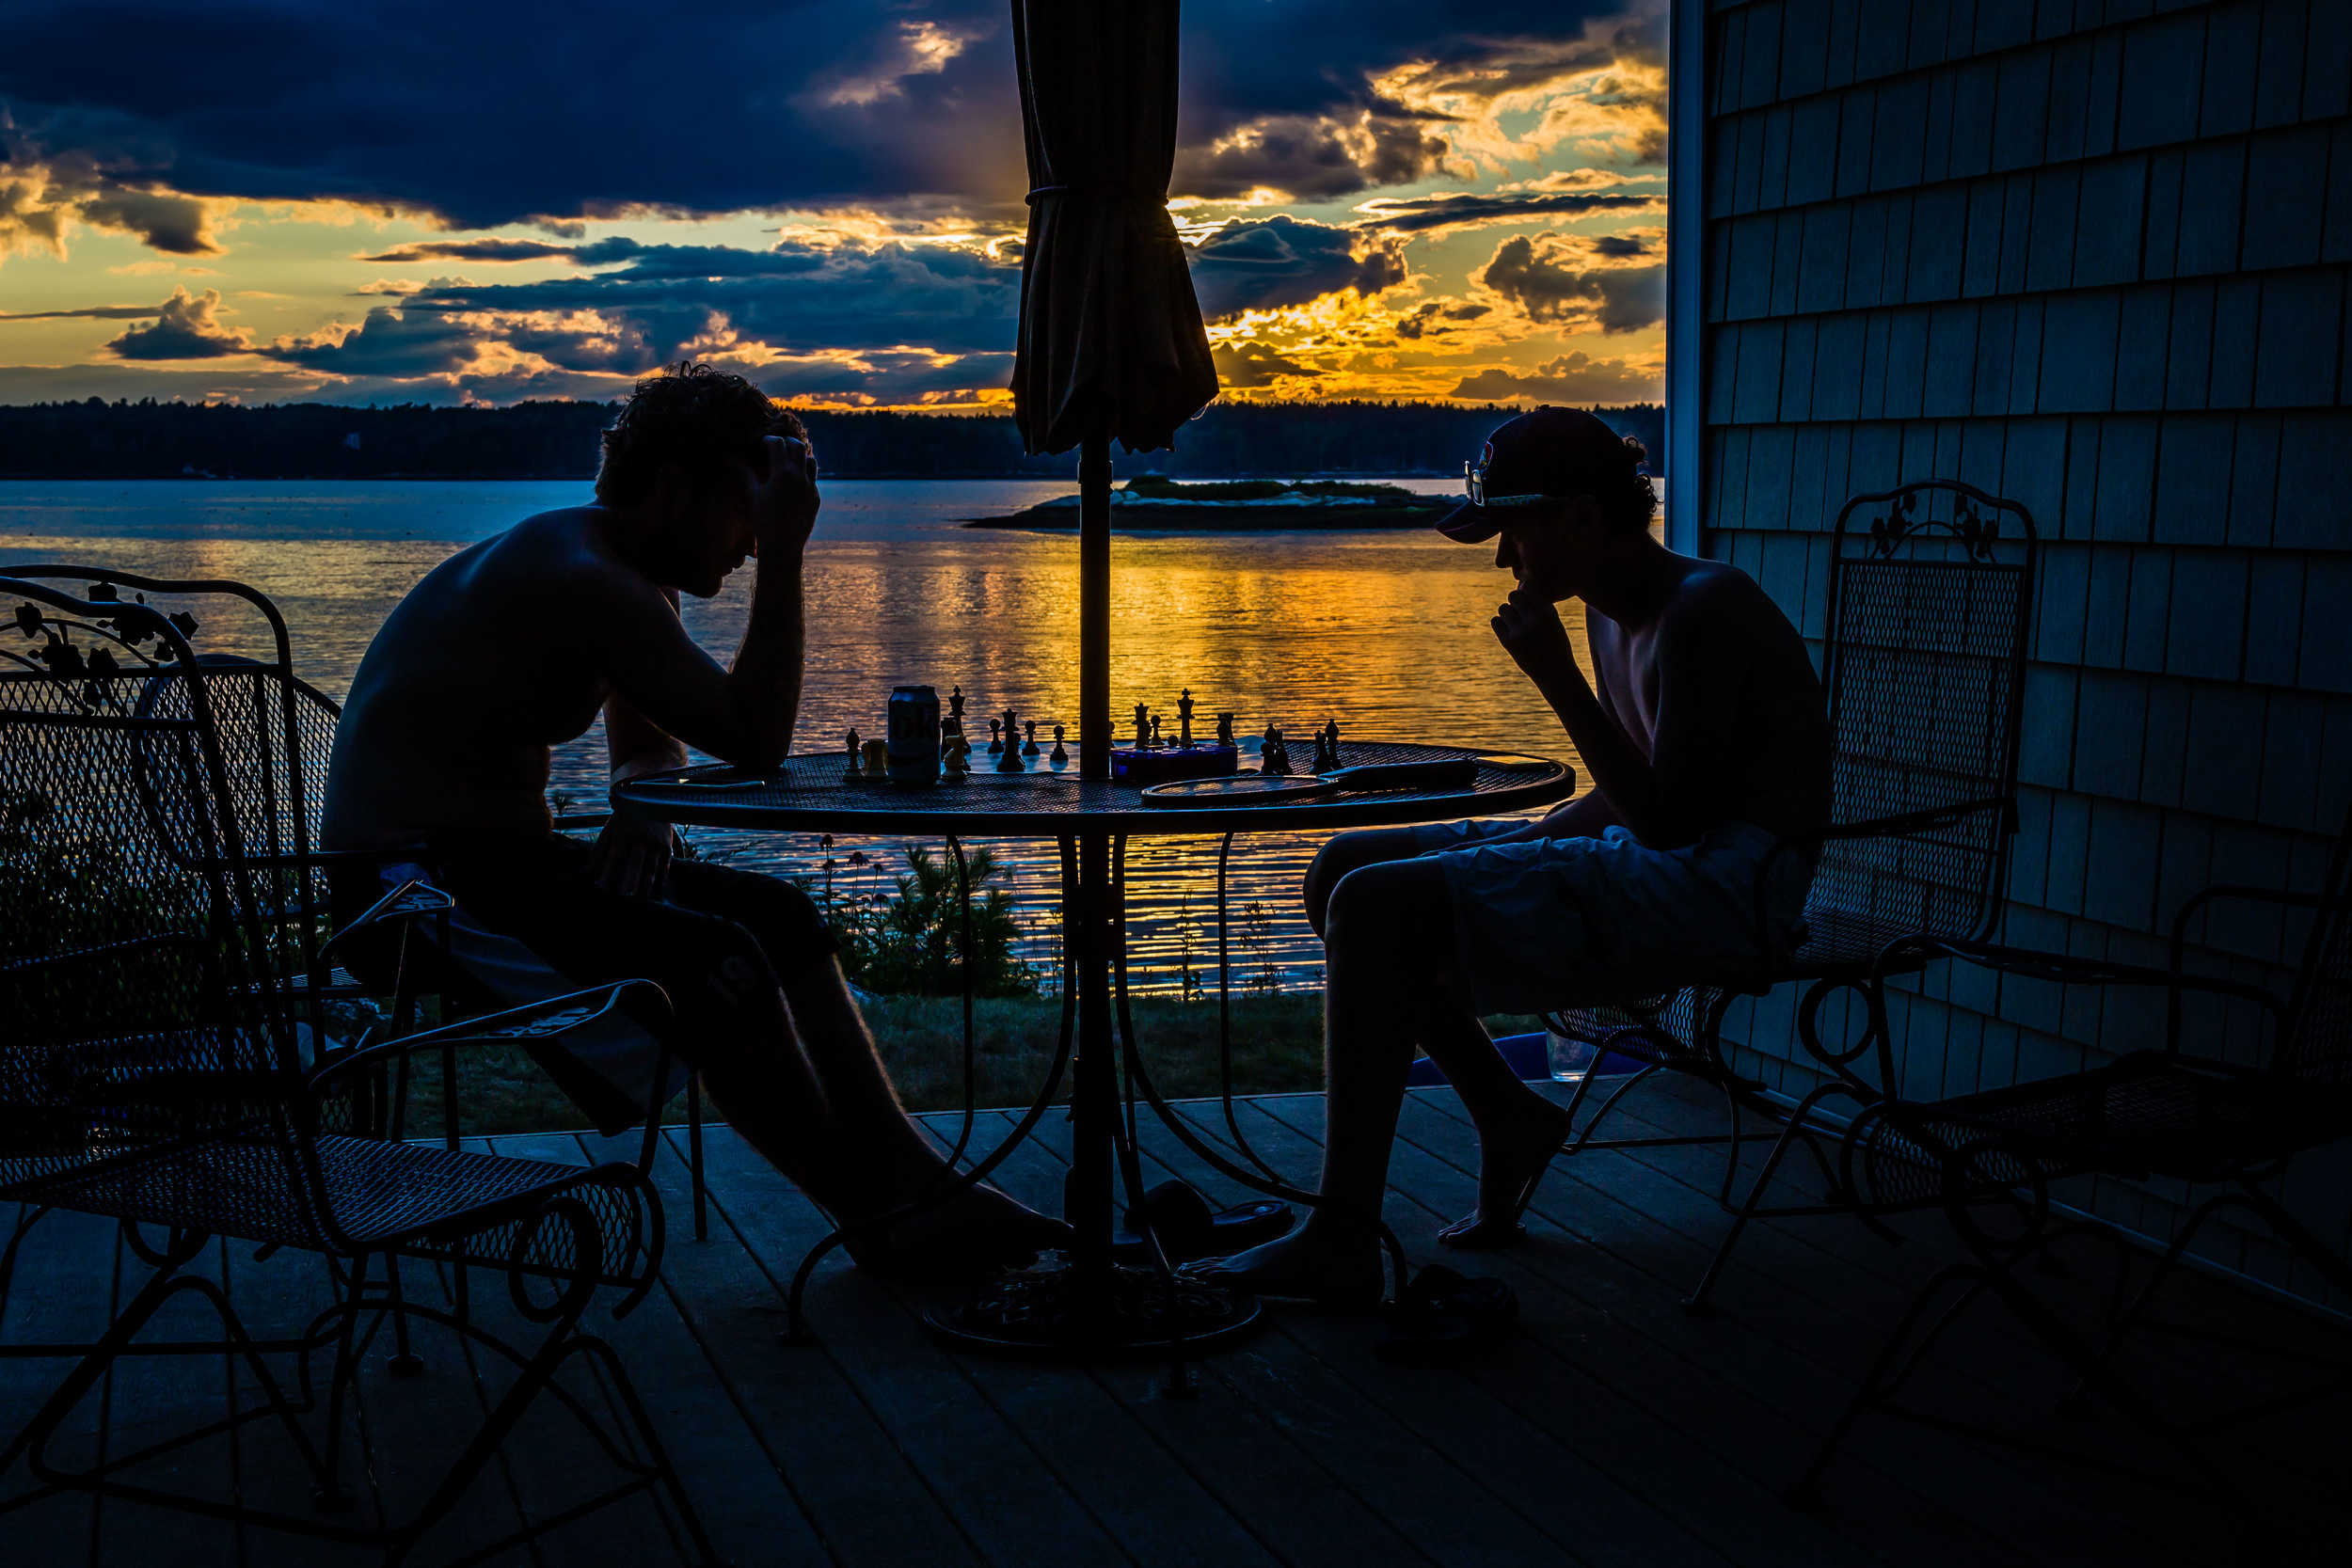 Knight Chess, Somewhere in Maine, 2015